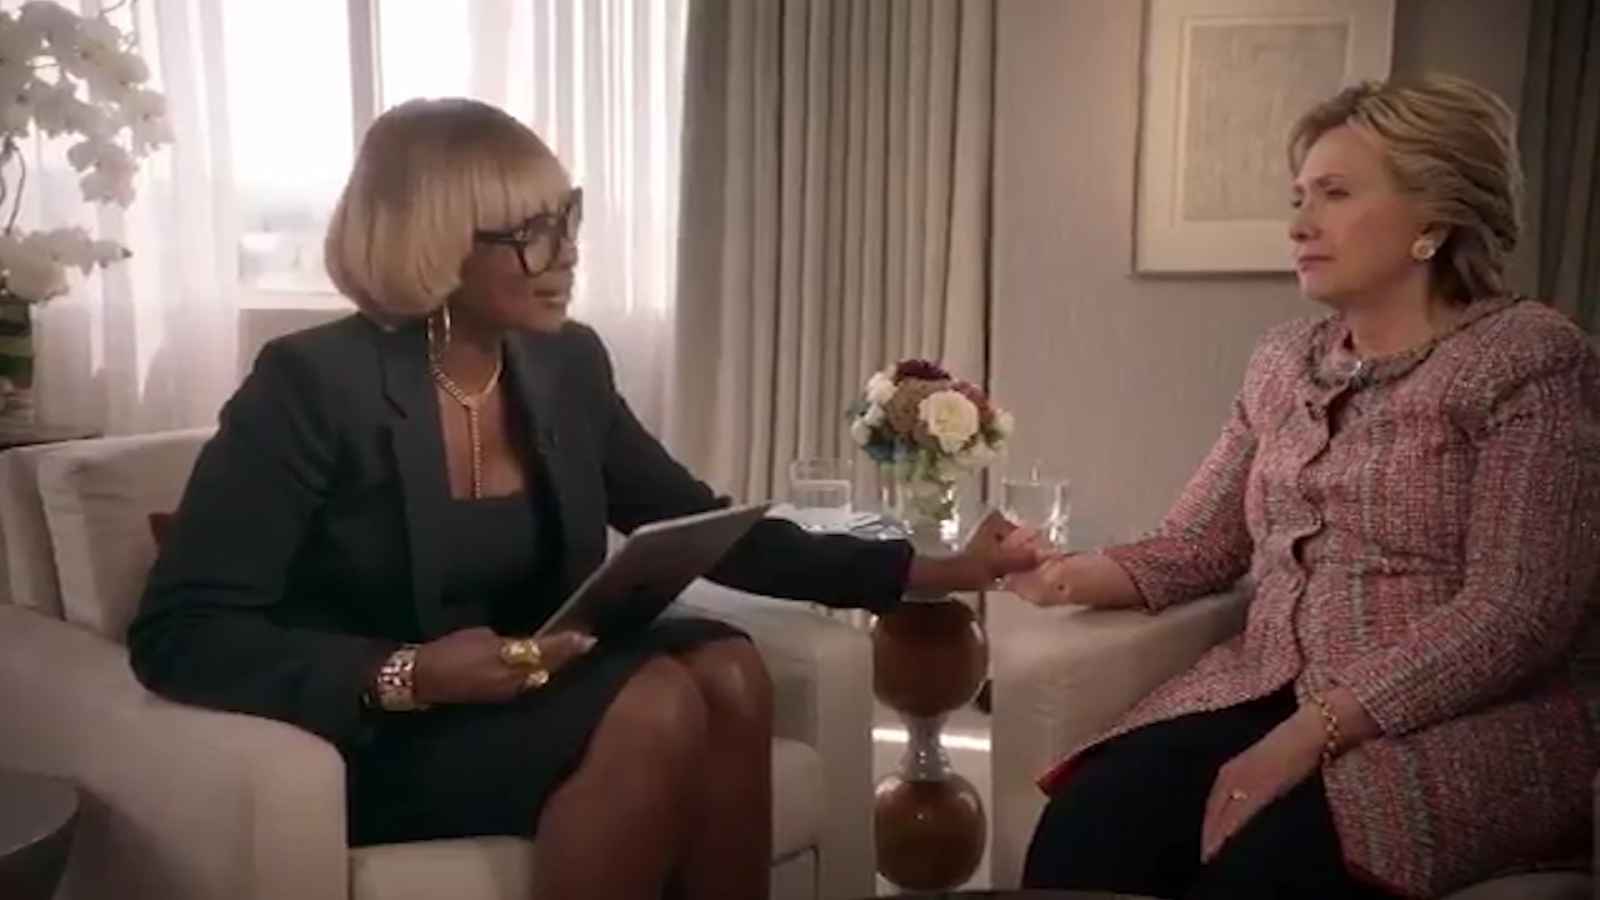 Hillary Clinton serenaded by Mary J Blige in strange Apple Music advert